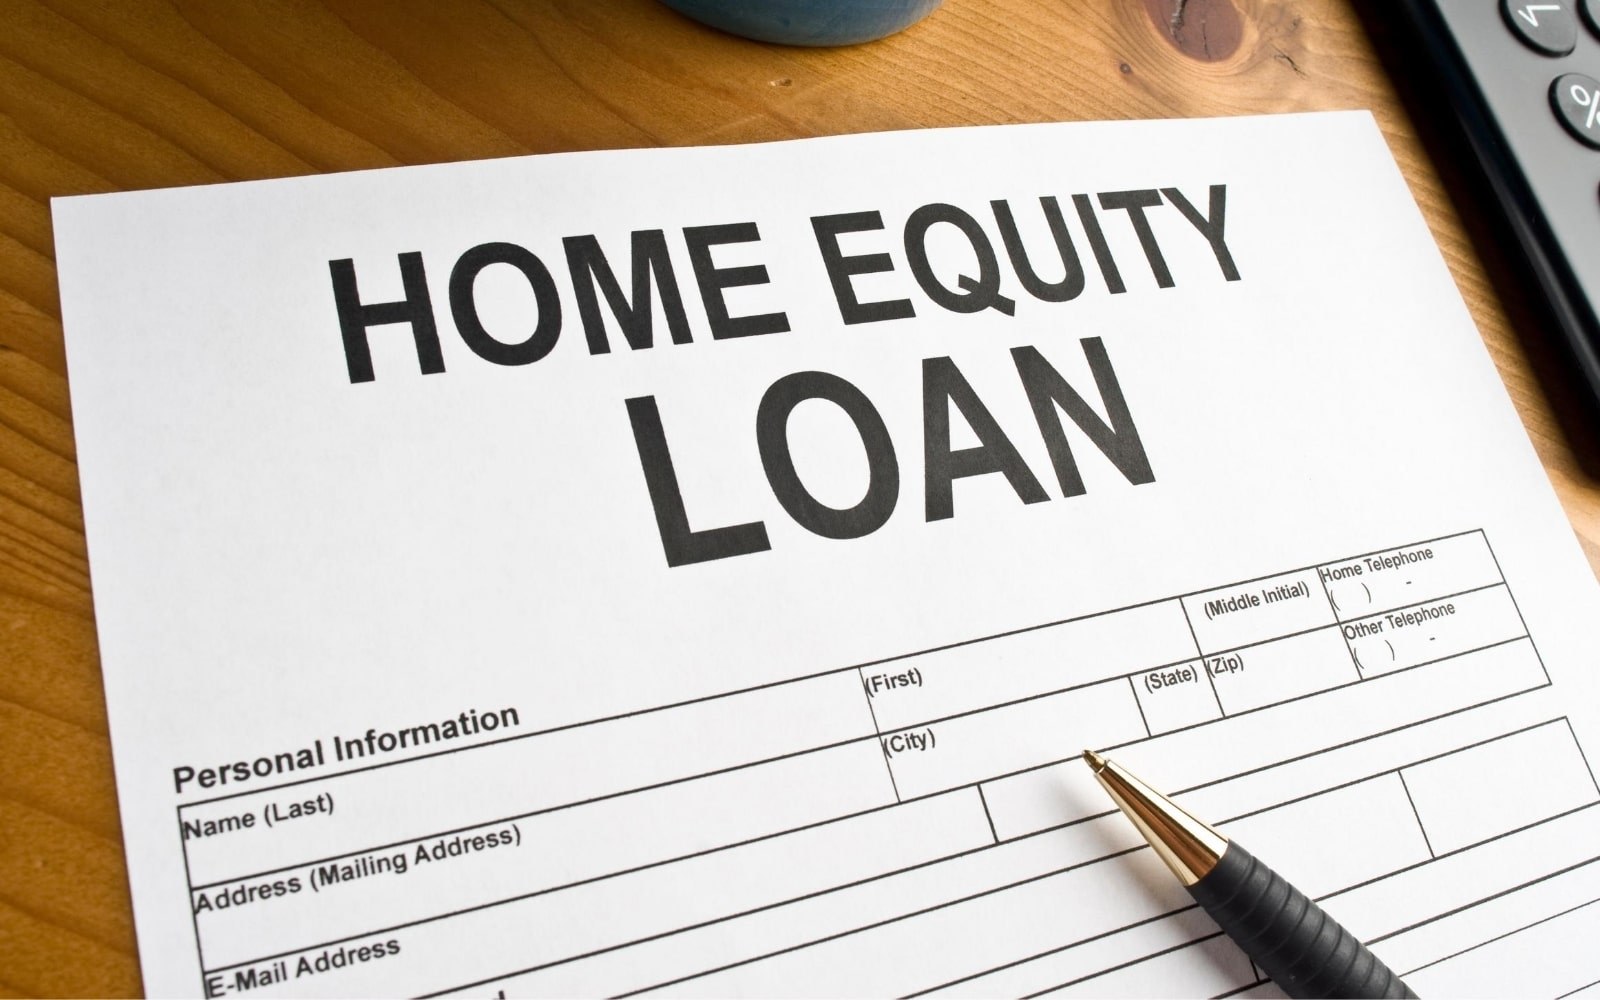 home equity loan form